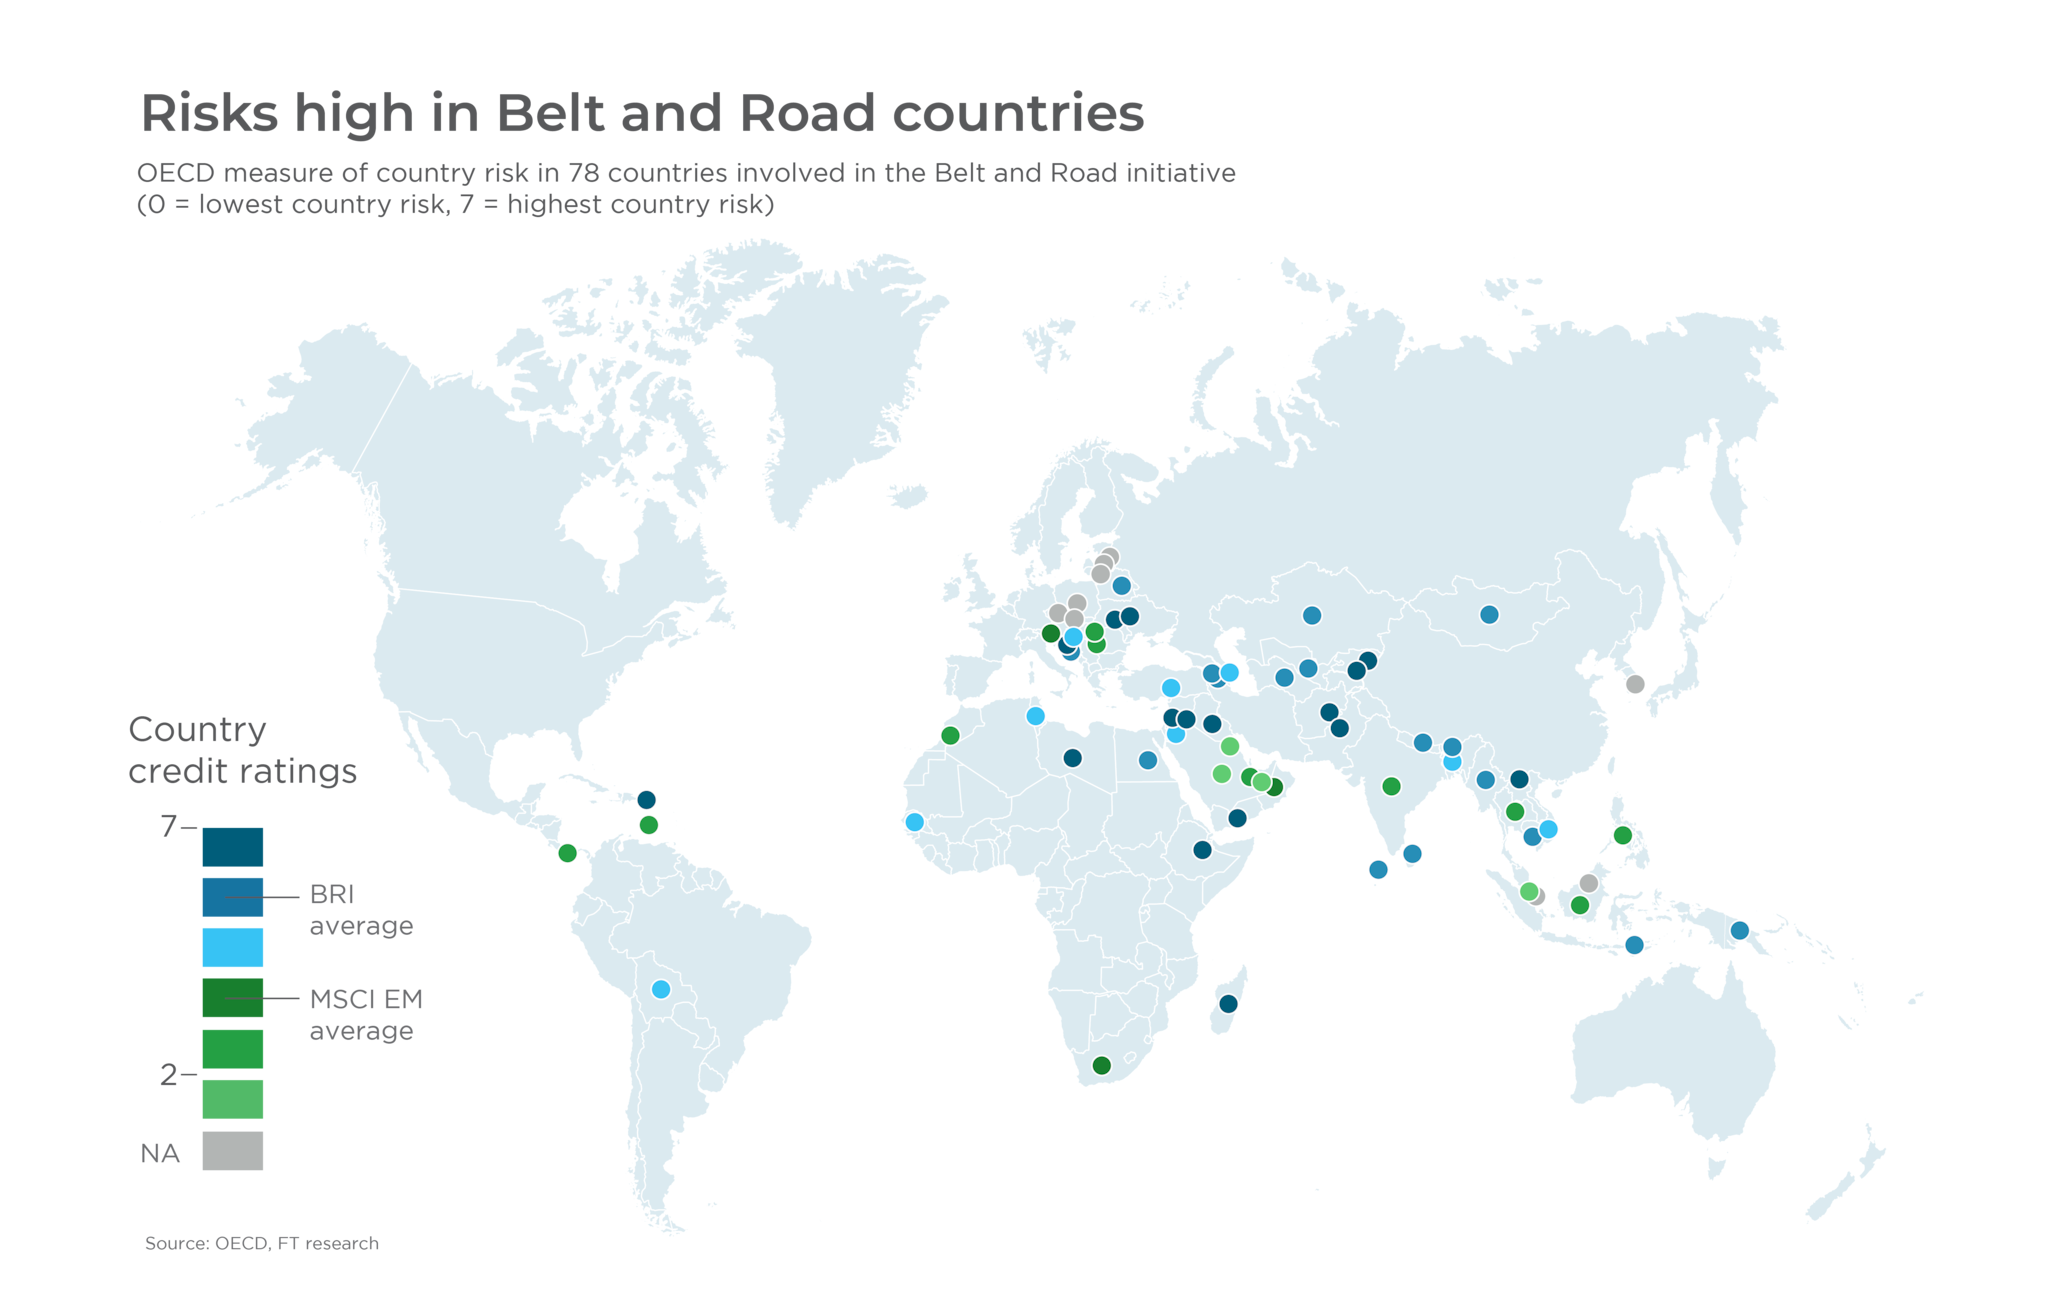 Risks high in Belt and Road countries